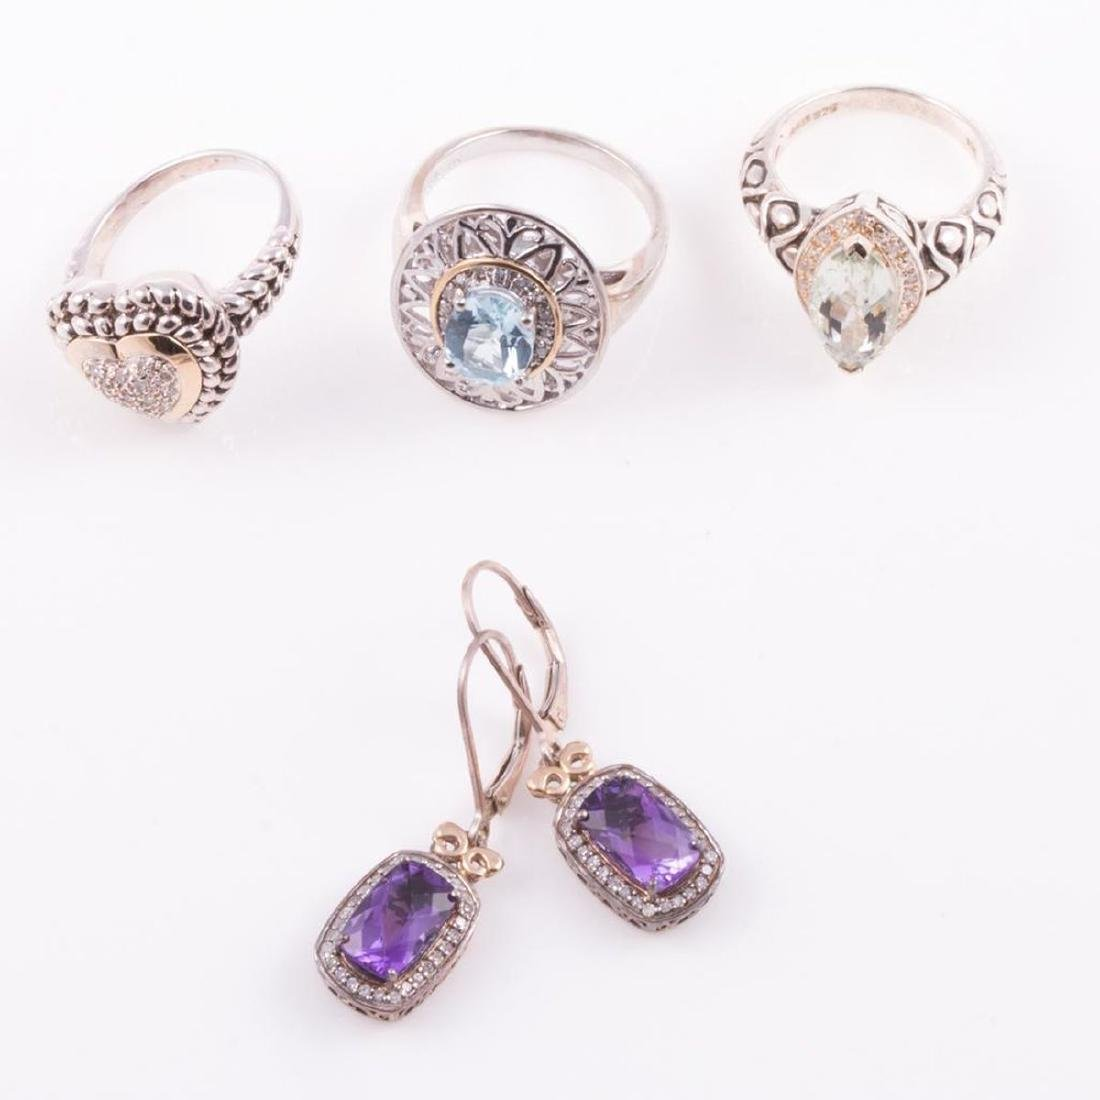 Gem-set, diamond and sterling silver jewelry - 2